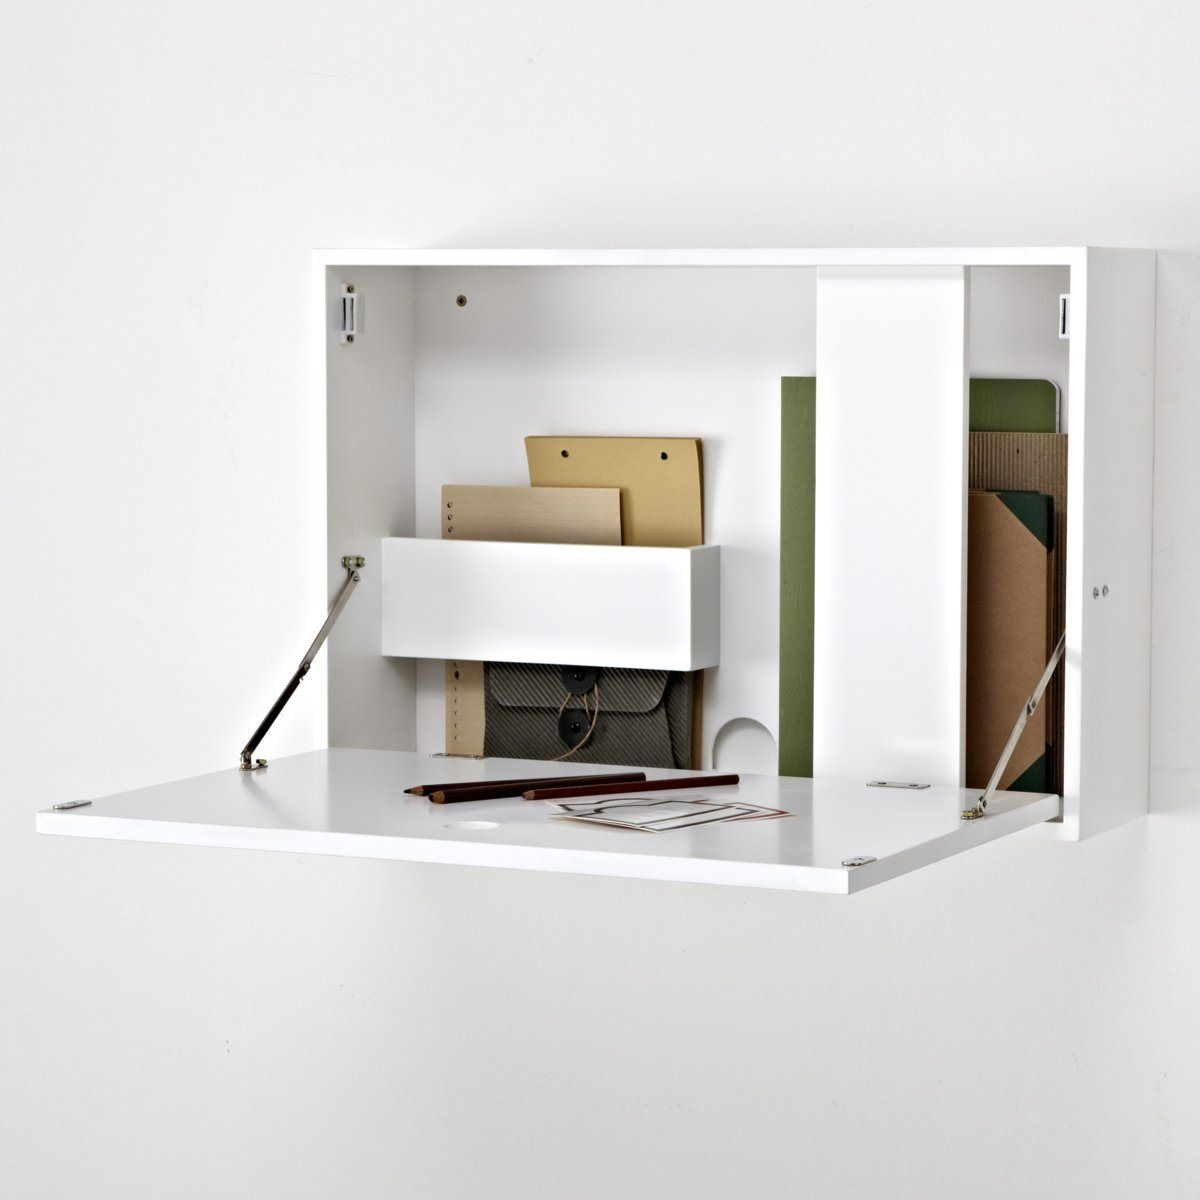 Mini Sekretär Meeting Mini Foldaway Wall Desk Furniture Wall Desk Mini Desk